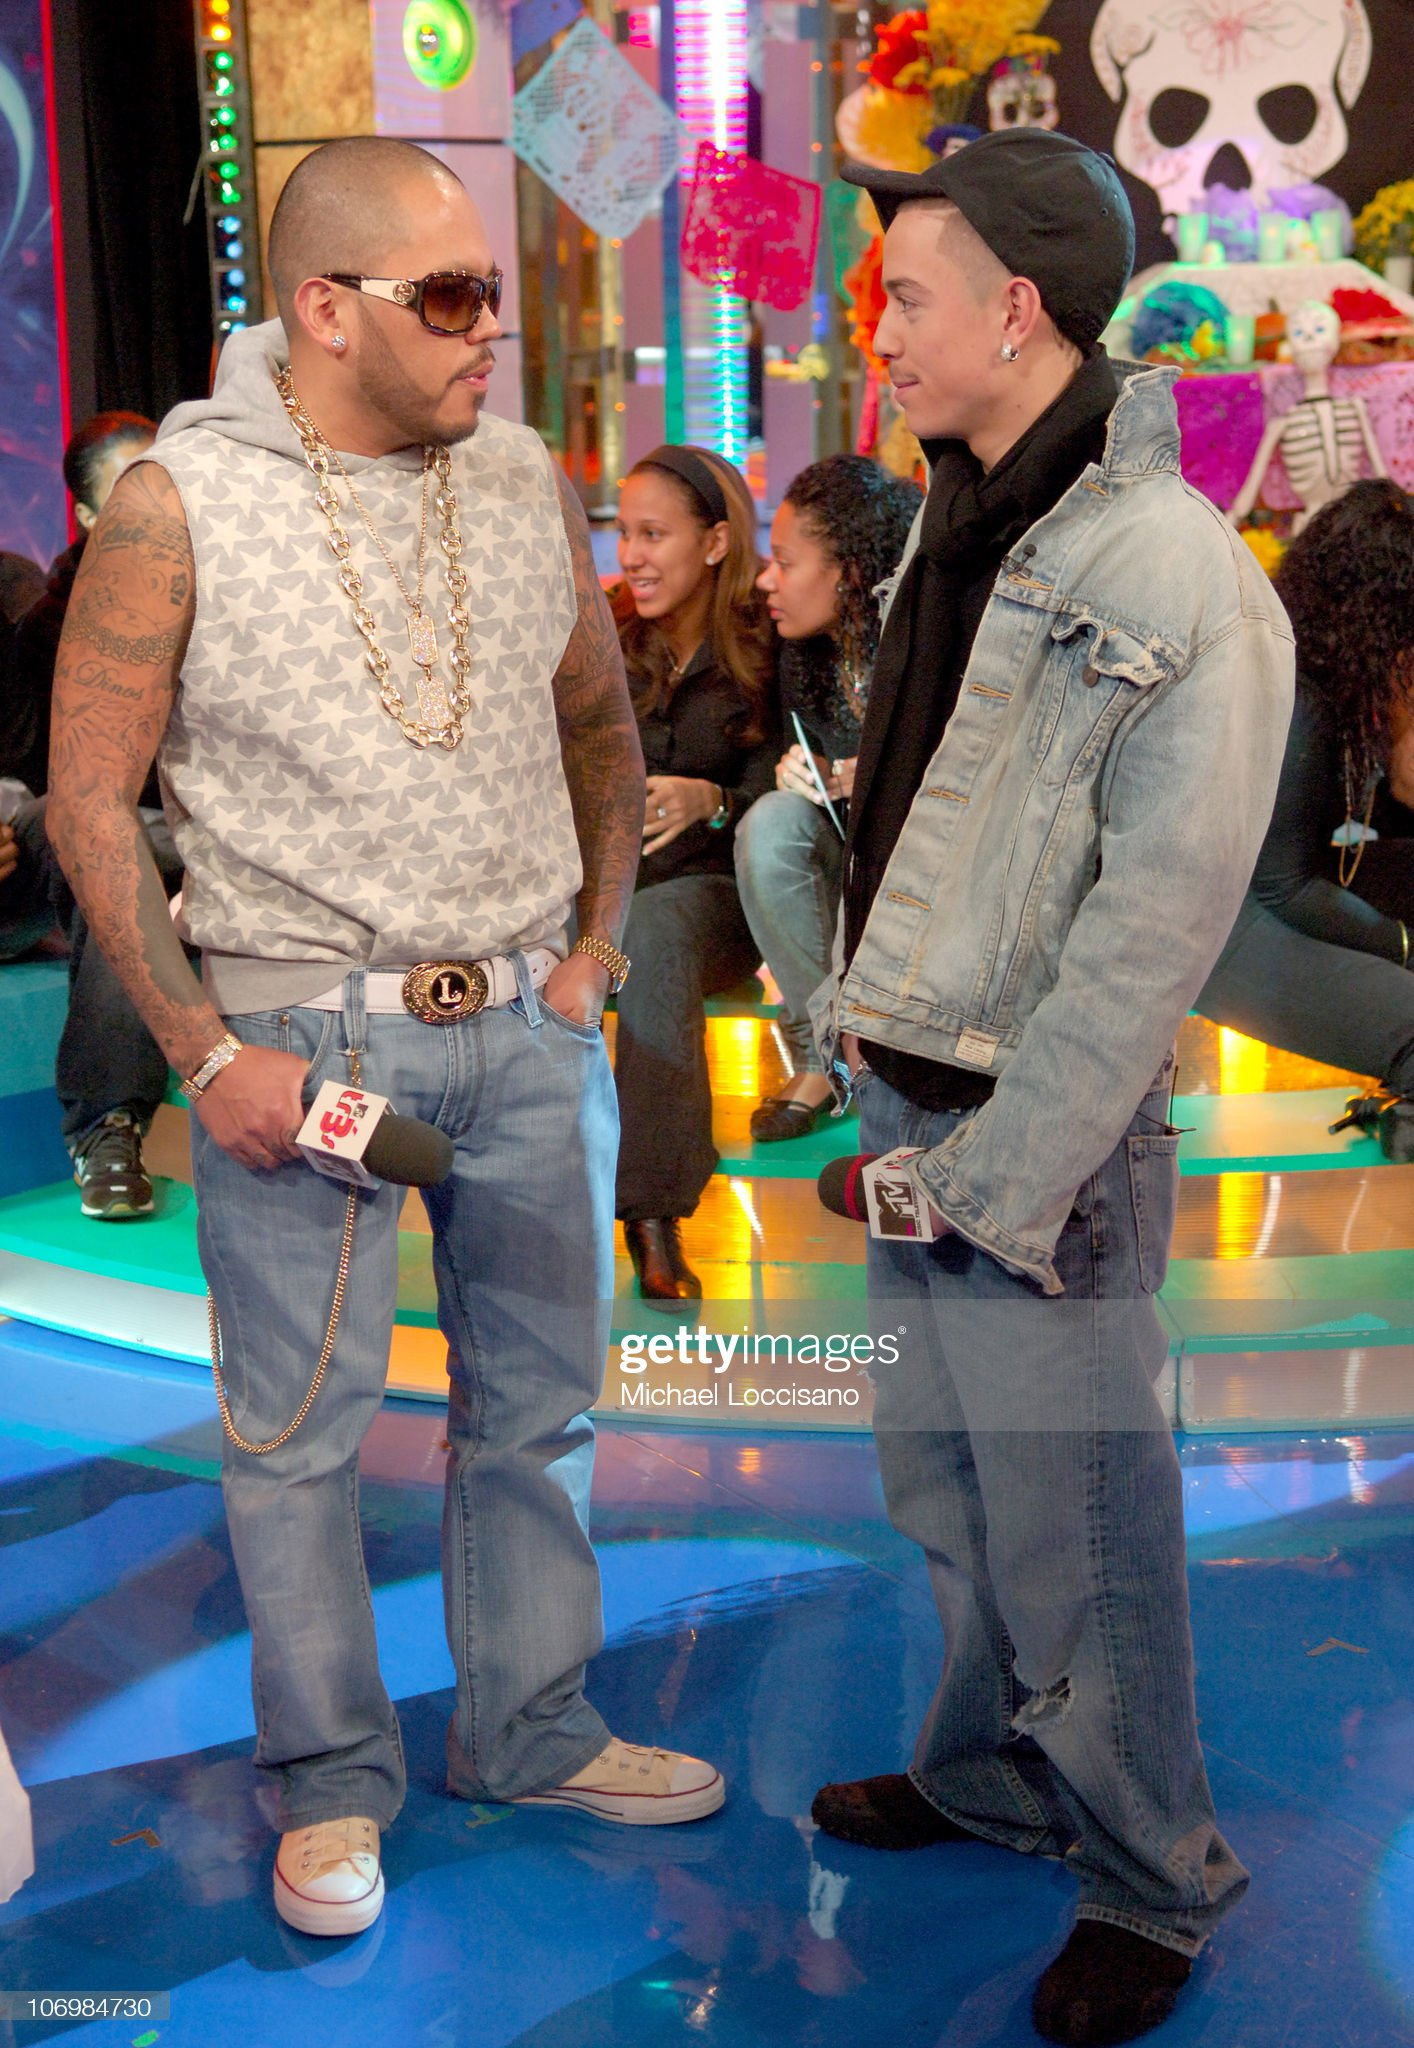 ¿Cuánto mide A.B Abraham Quintanilla III? - Altura - Real height Quintanilla-and-peewee-of-the-kumbia-allstars-picture-id106984730?s=2048x2048